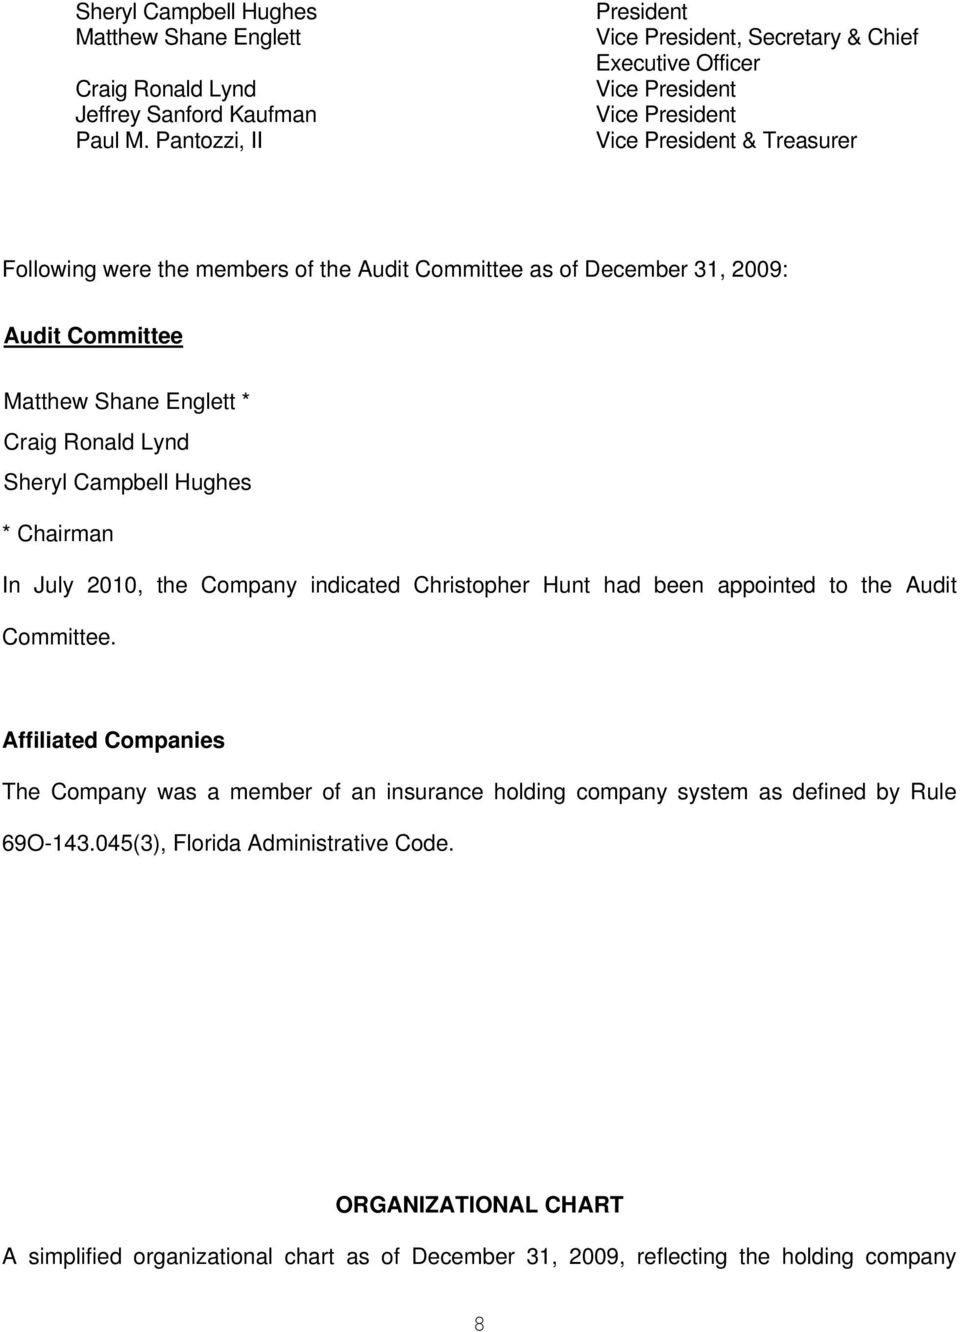 December 31, 2009: Audit Committee Matthew Shane Englett * Craig Ronald Lynd Sheryl Campbell Hughes * Chairman In July 2010, the Company indicated Christopher Hunt had been appointed to